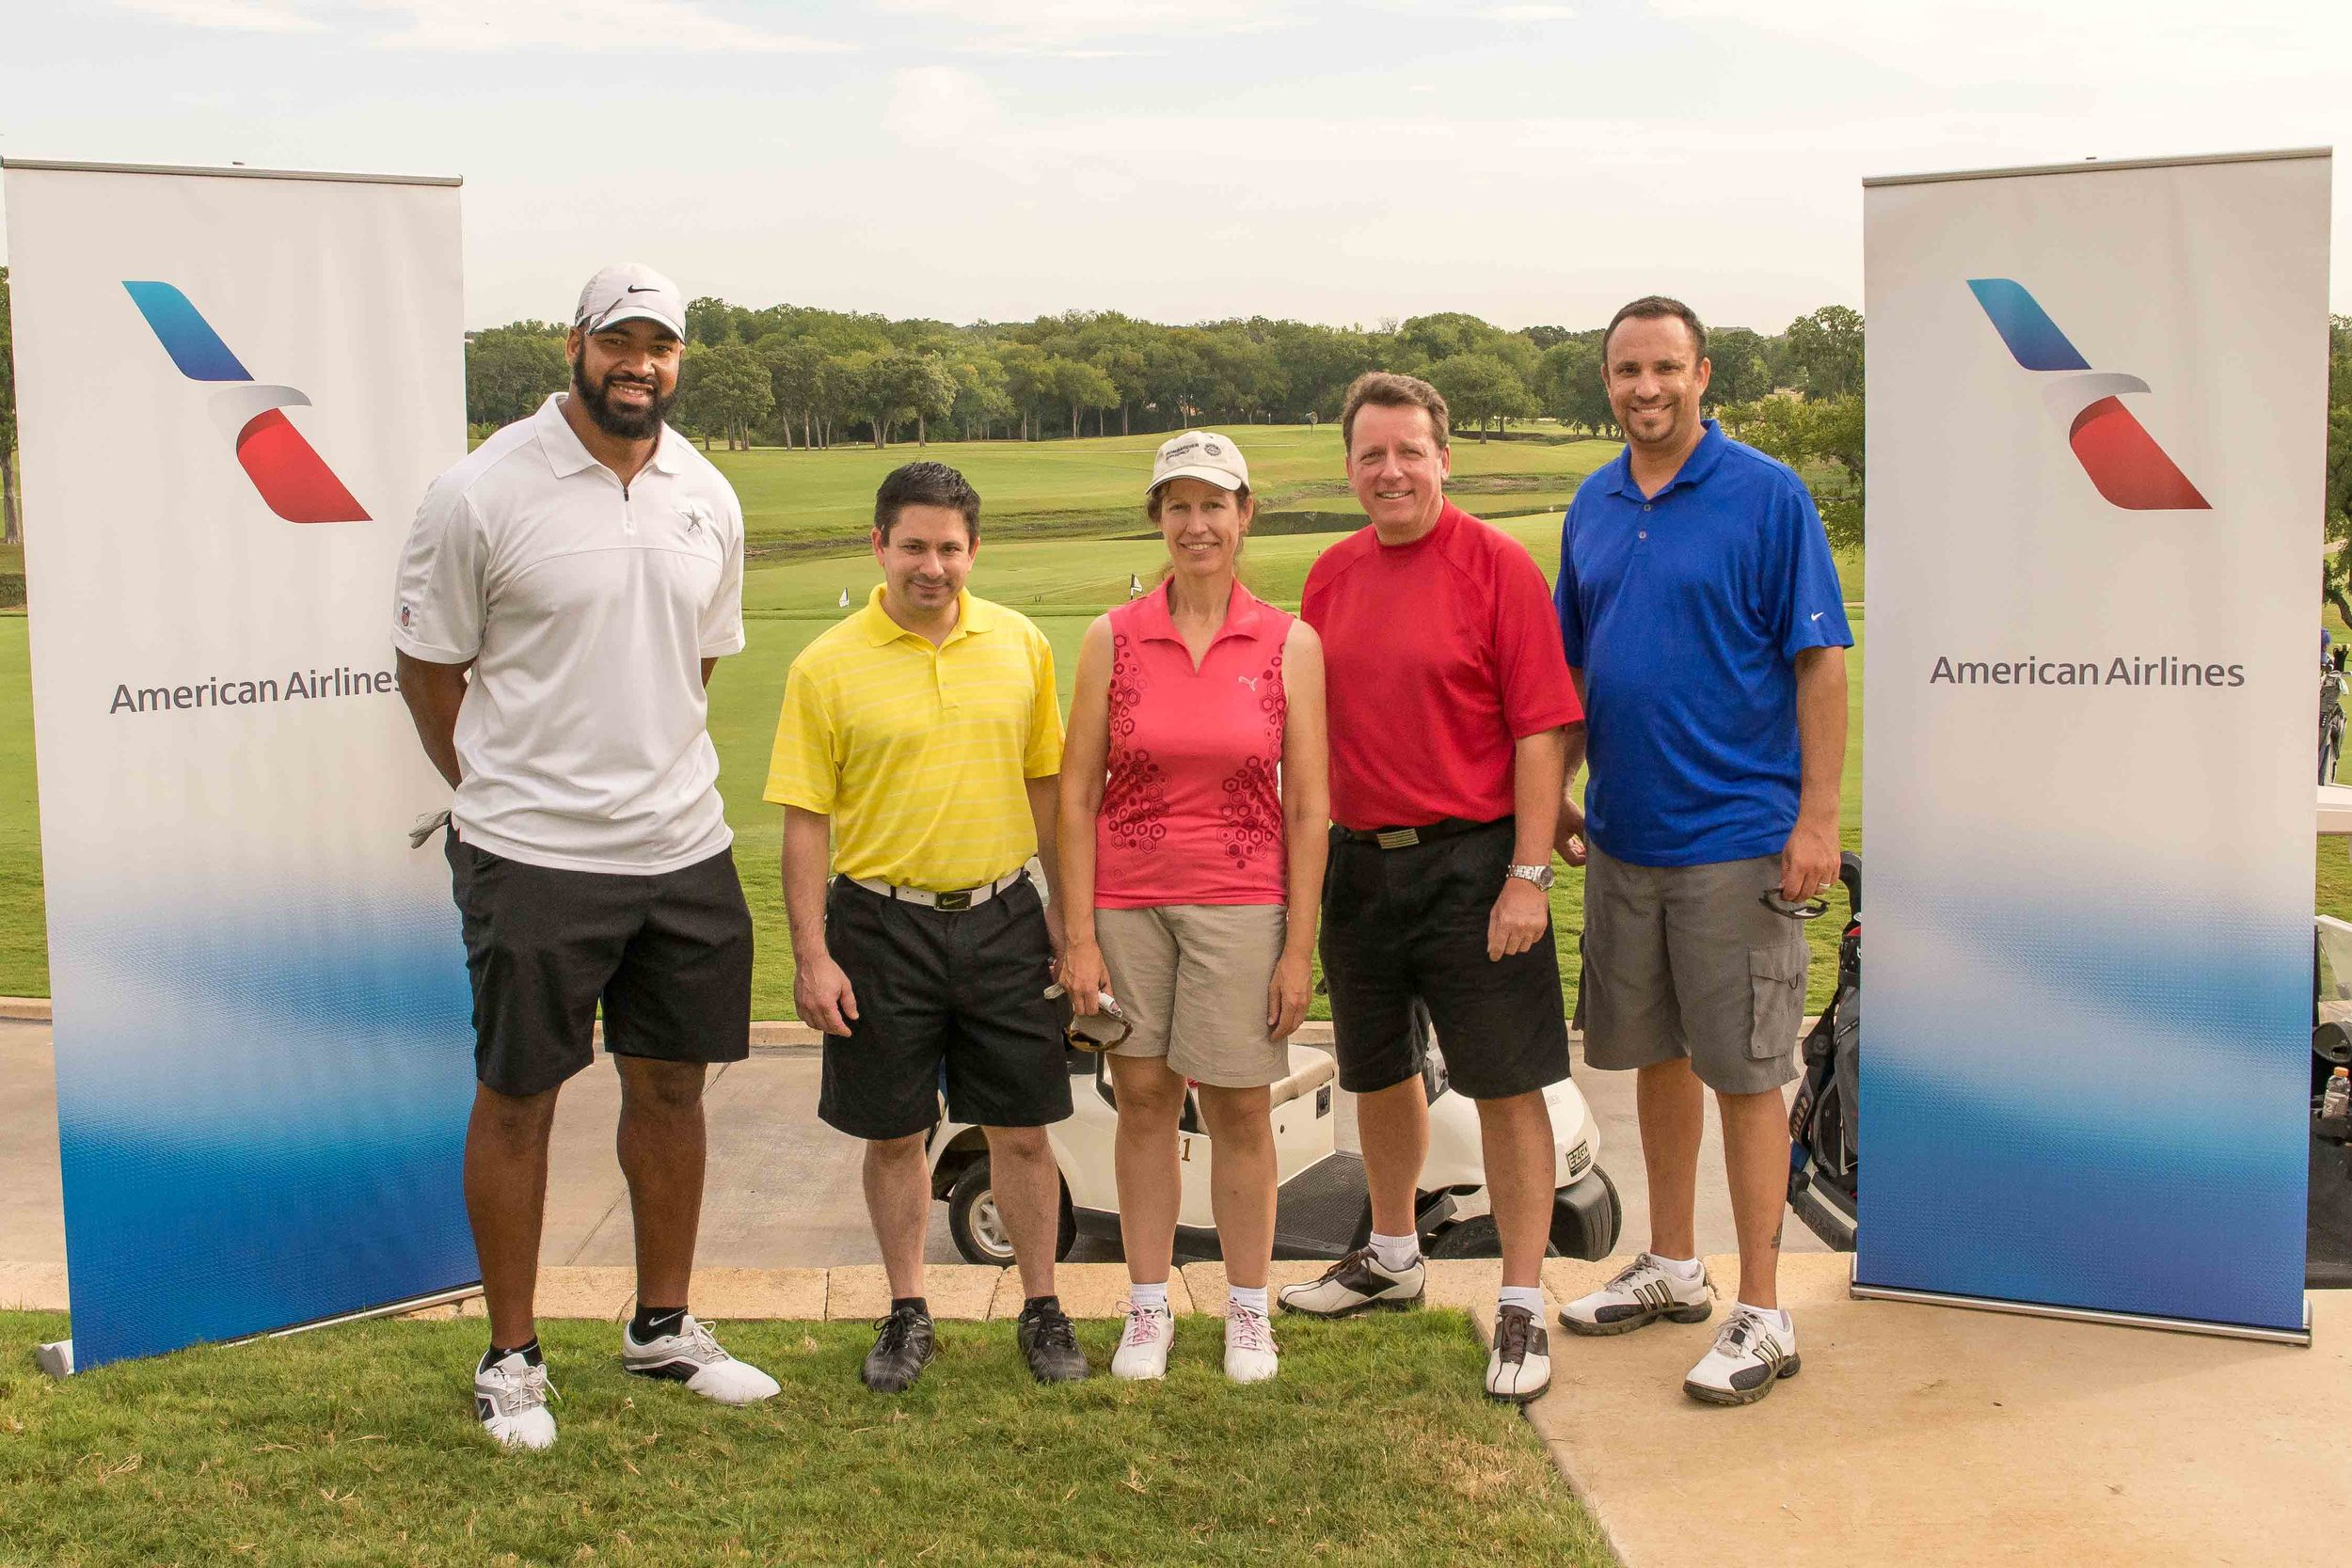 Team Jason Hatcher (Dallas Cowboy)